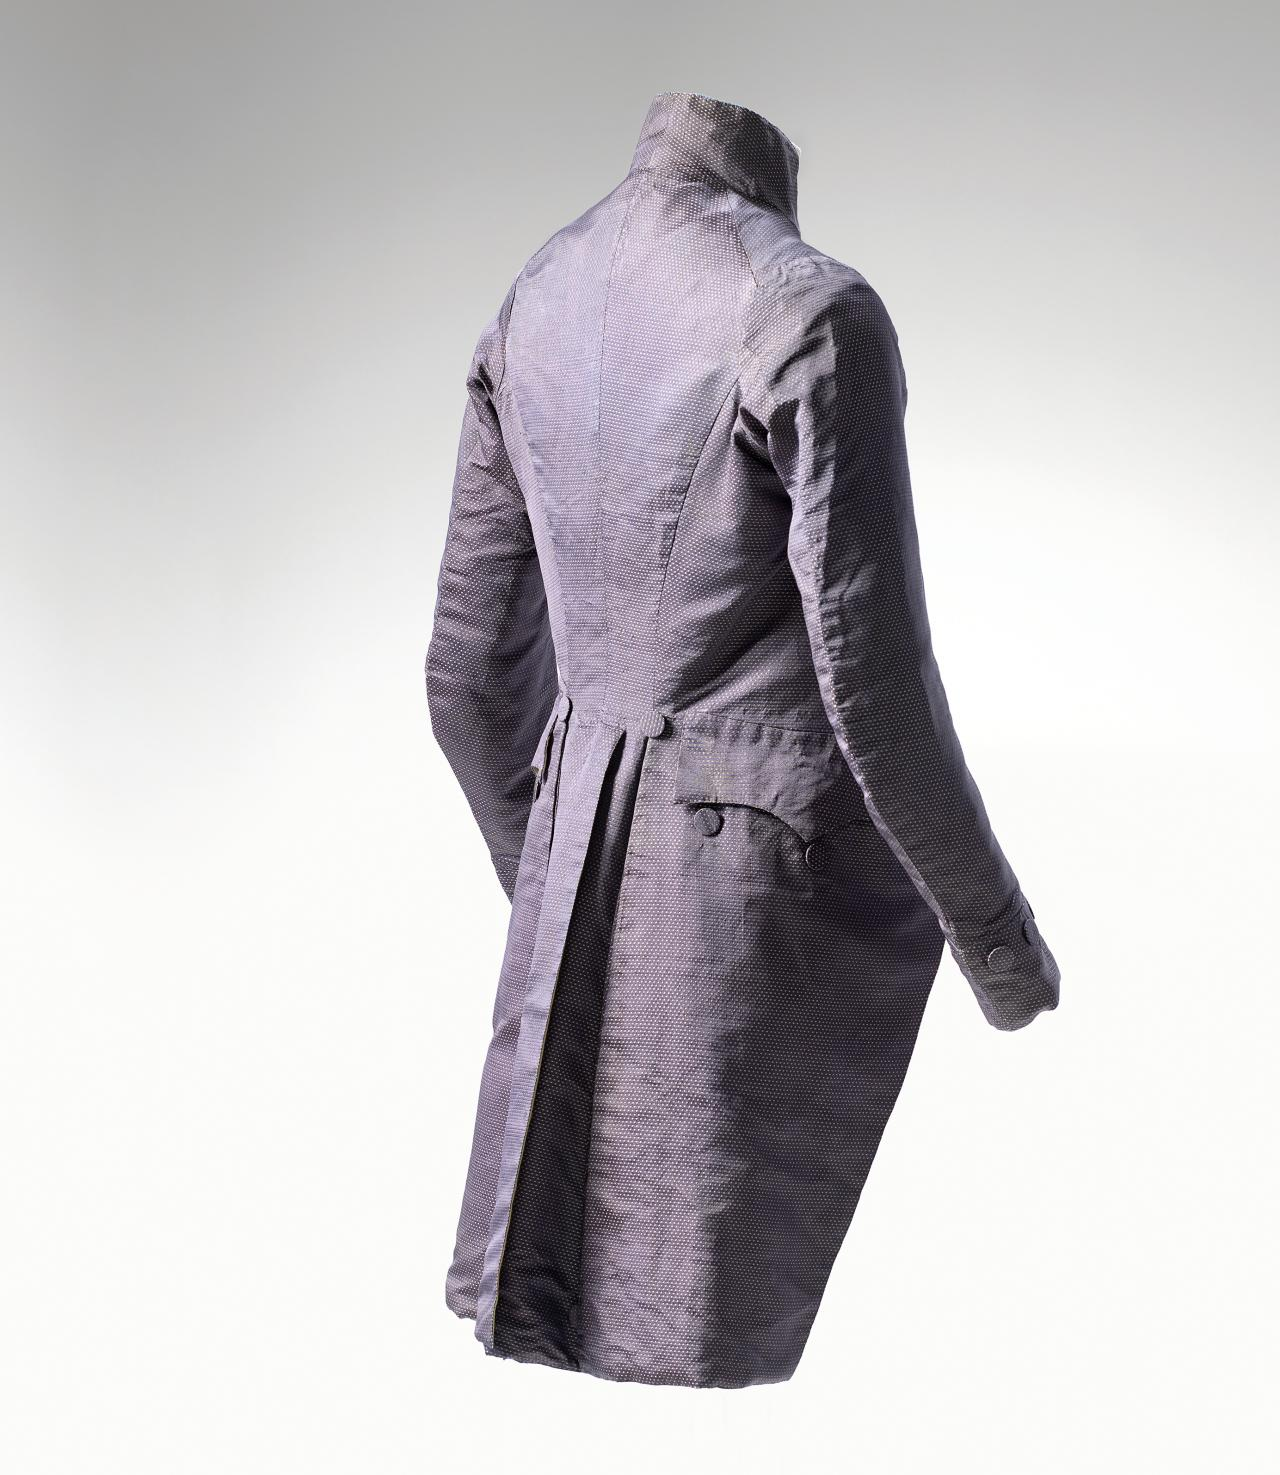 The lives of a man's eighteenth-century coat